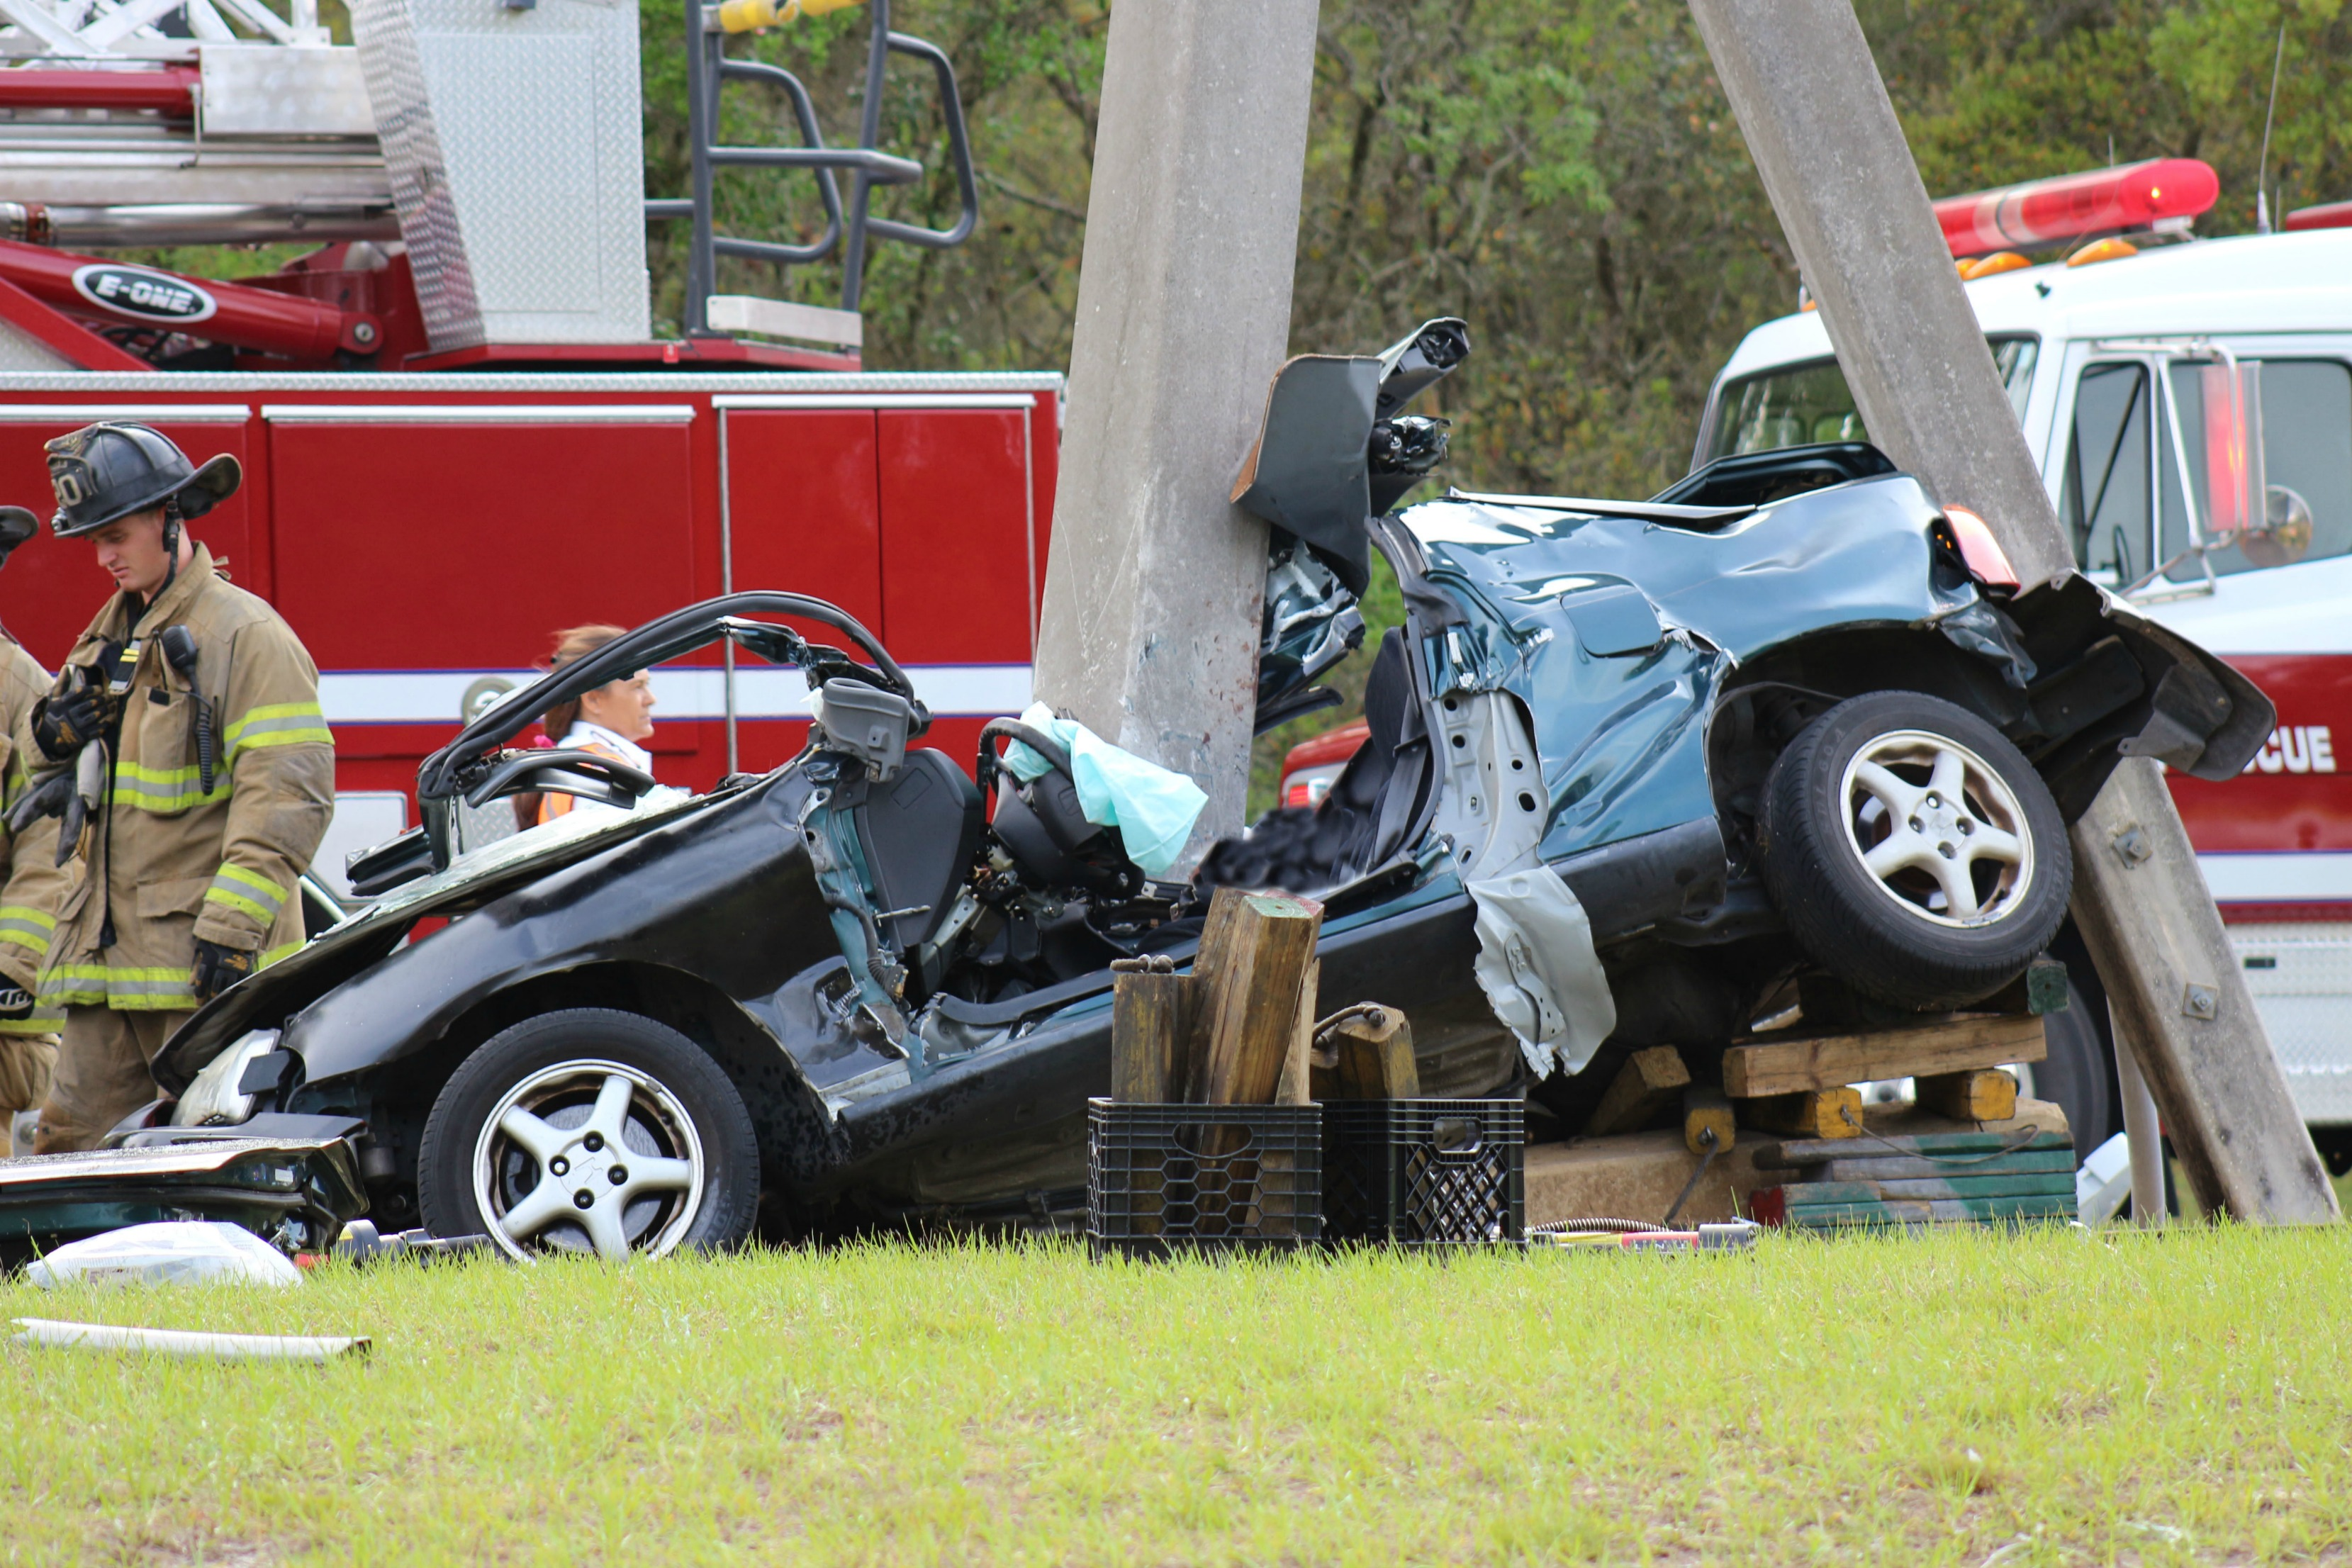 Street racing could be cause of fatal crash in Marion Oaks